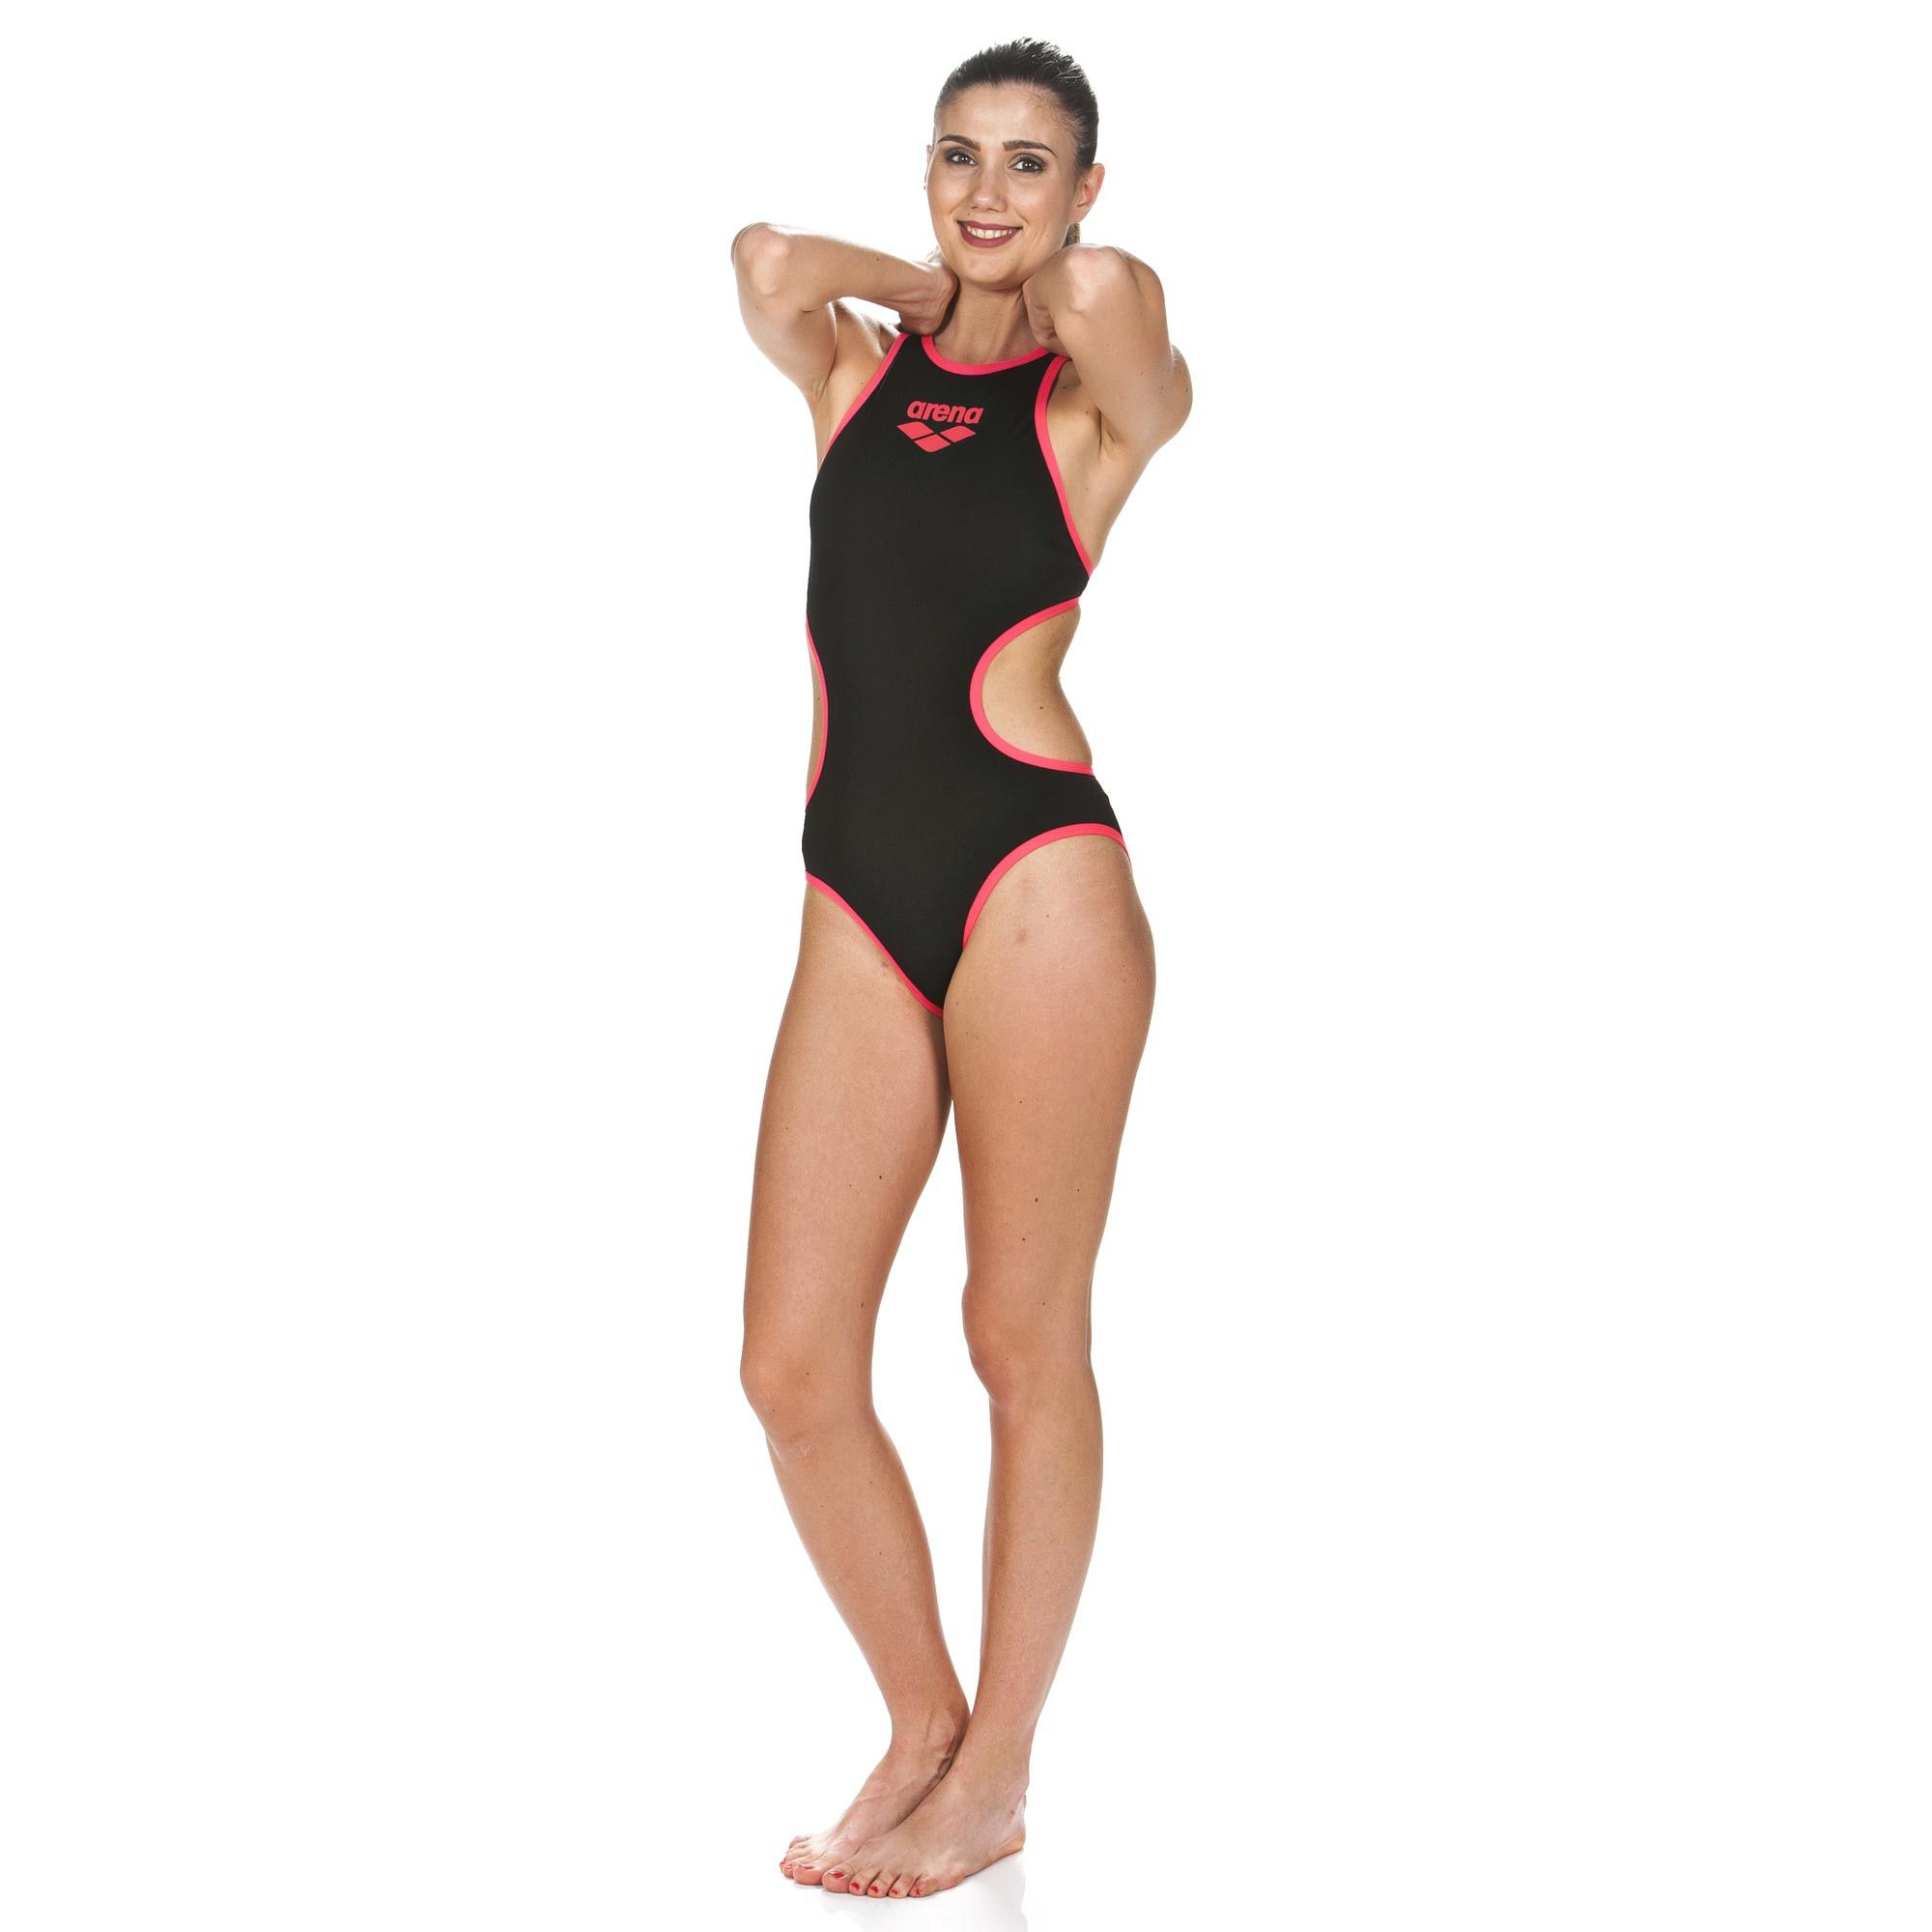 a1cdbb91d3b21 Women s Arena One Biglogo One Piece Swimsuit